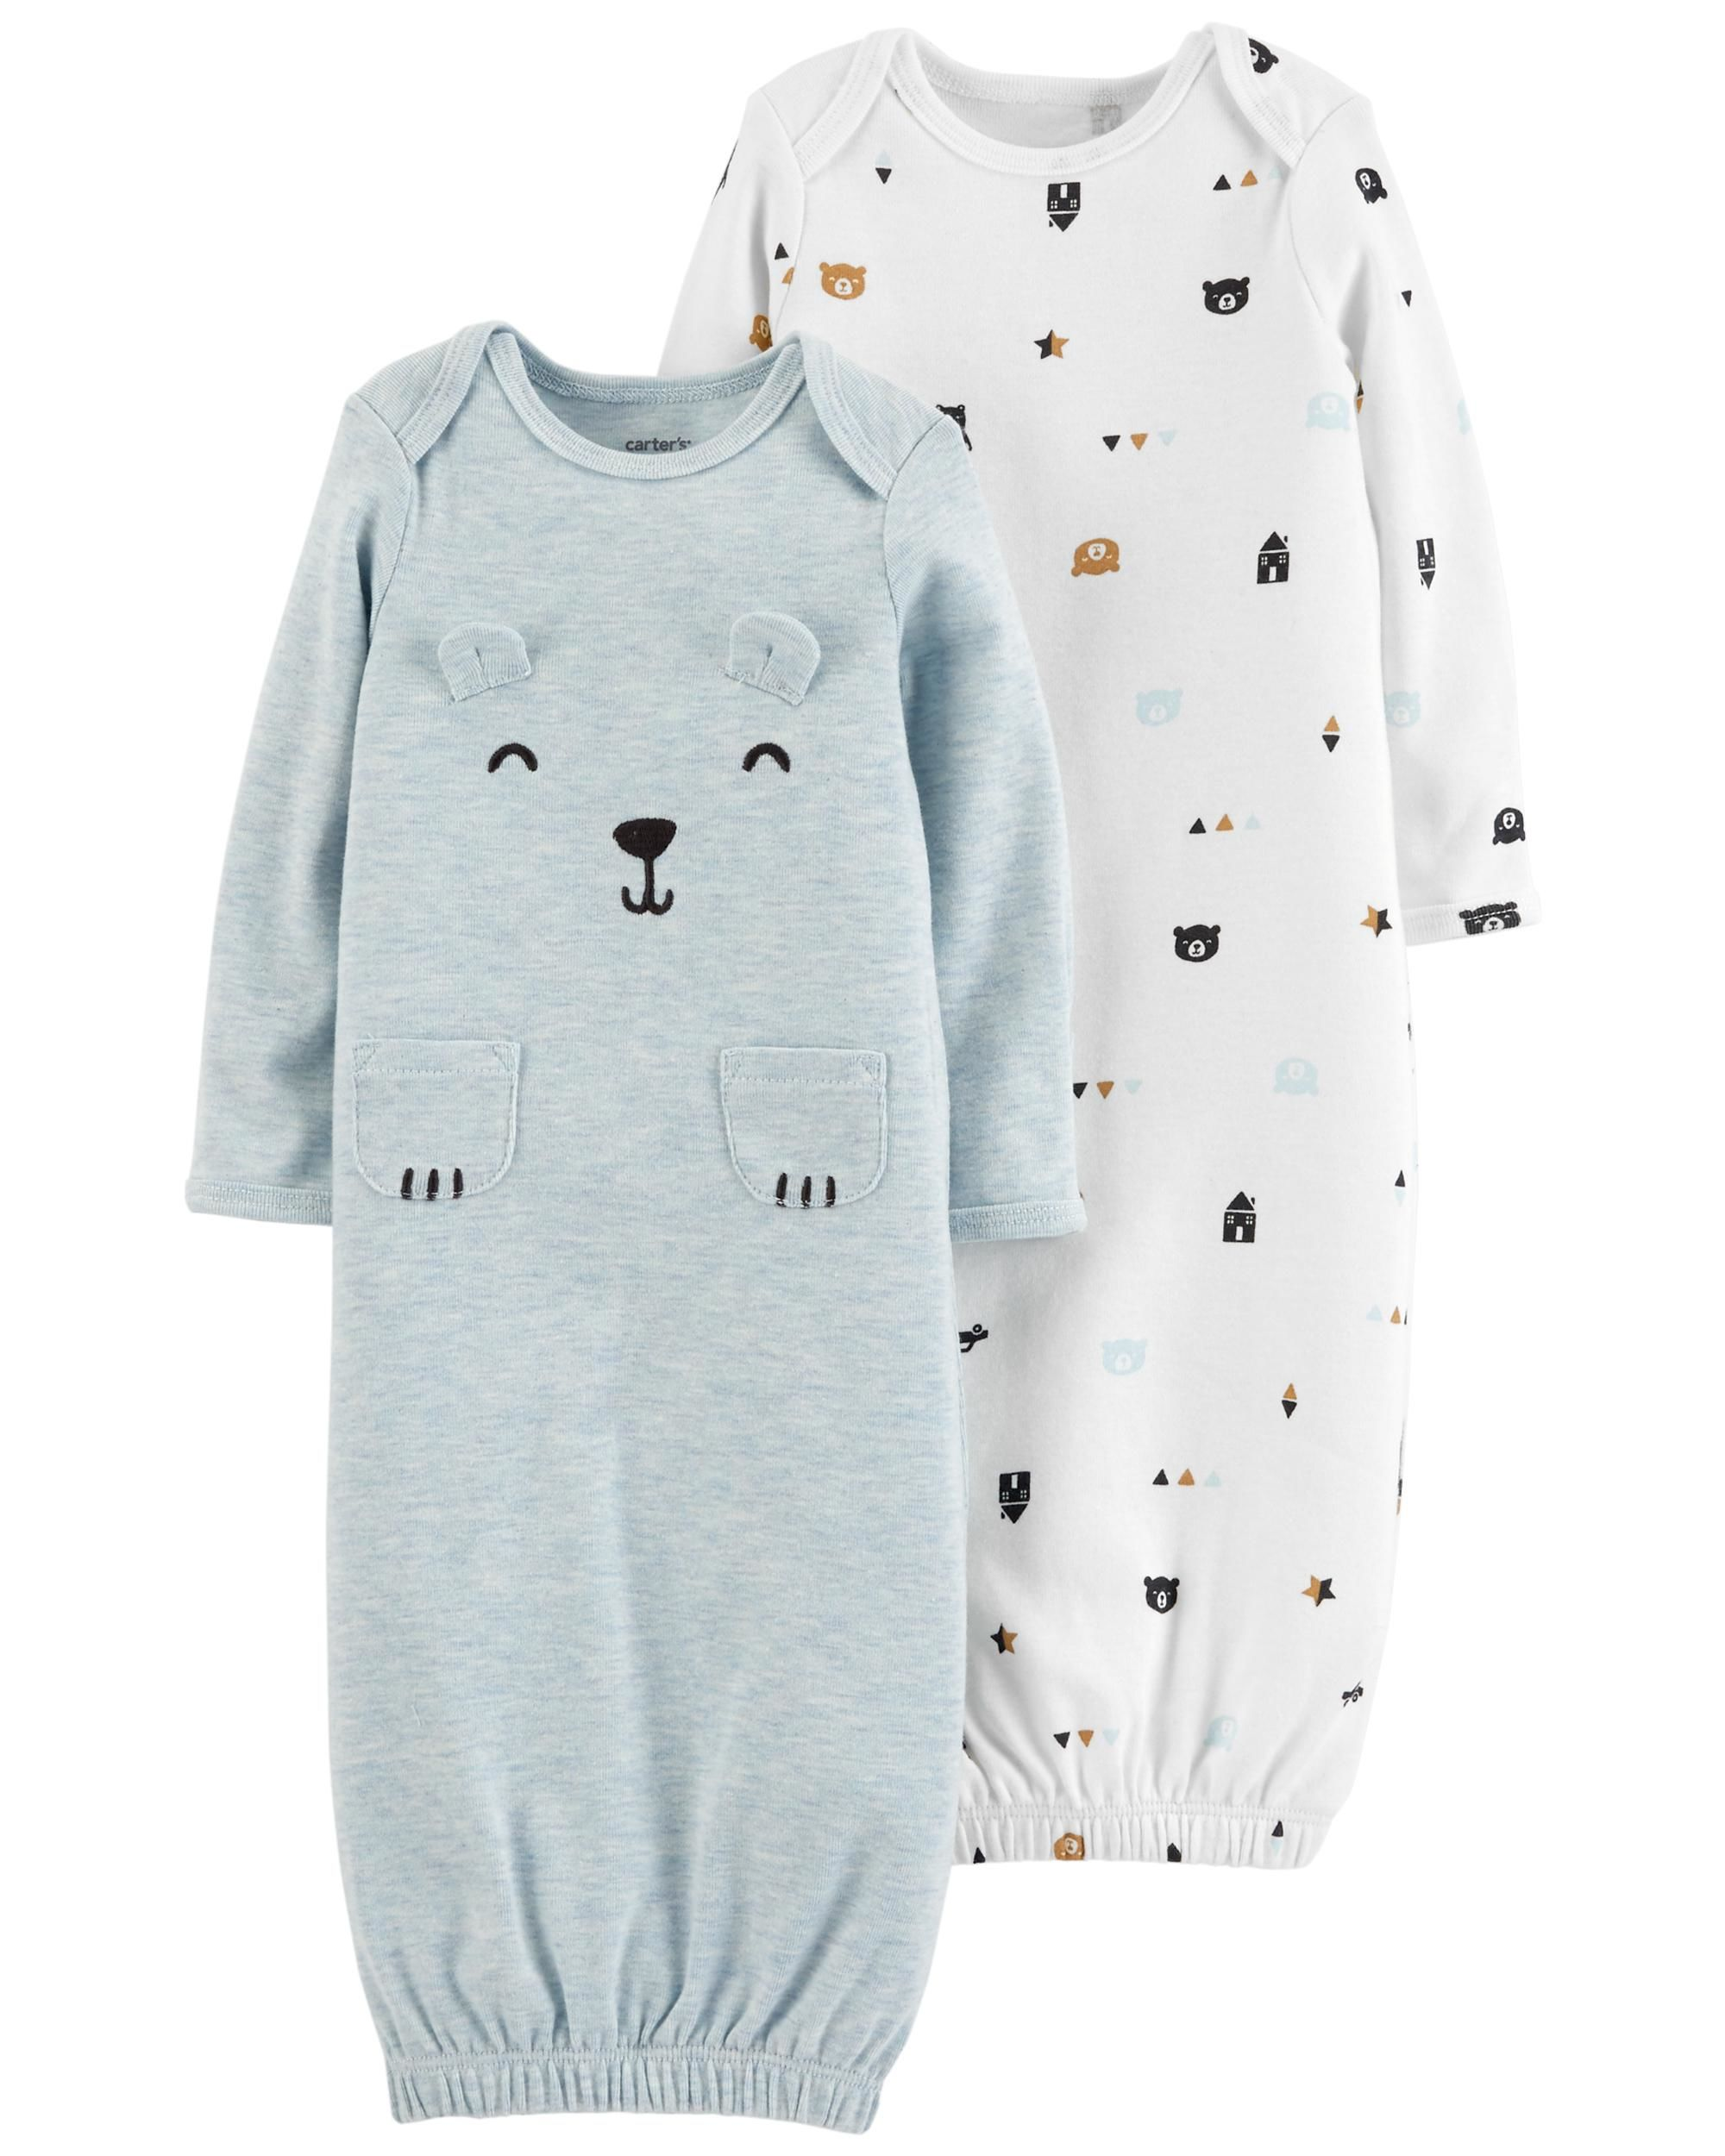 Best Baby Sleepwear for Every Age and Stage